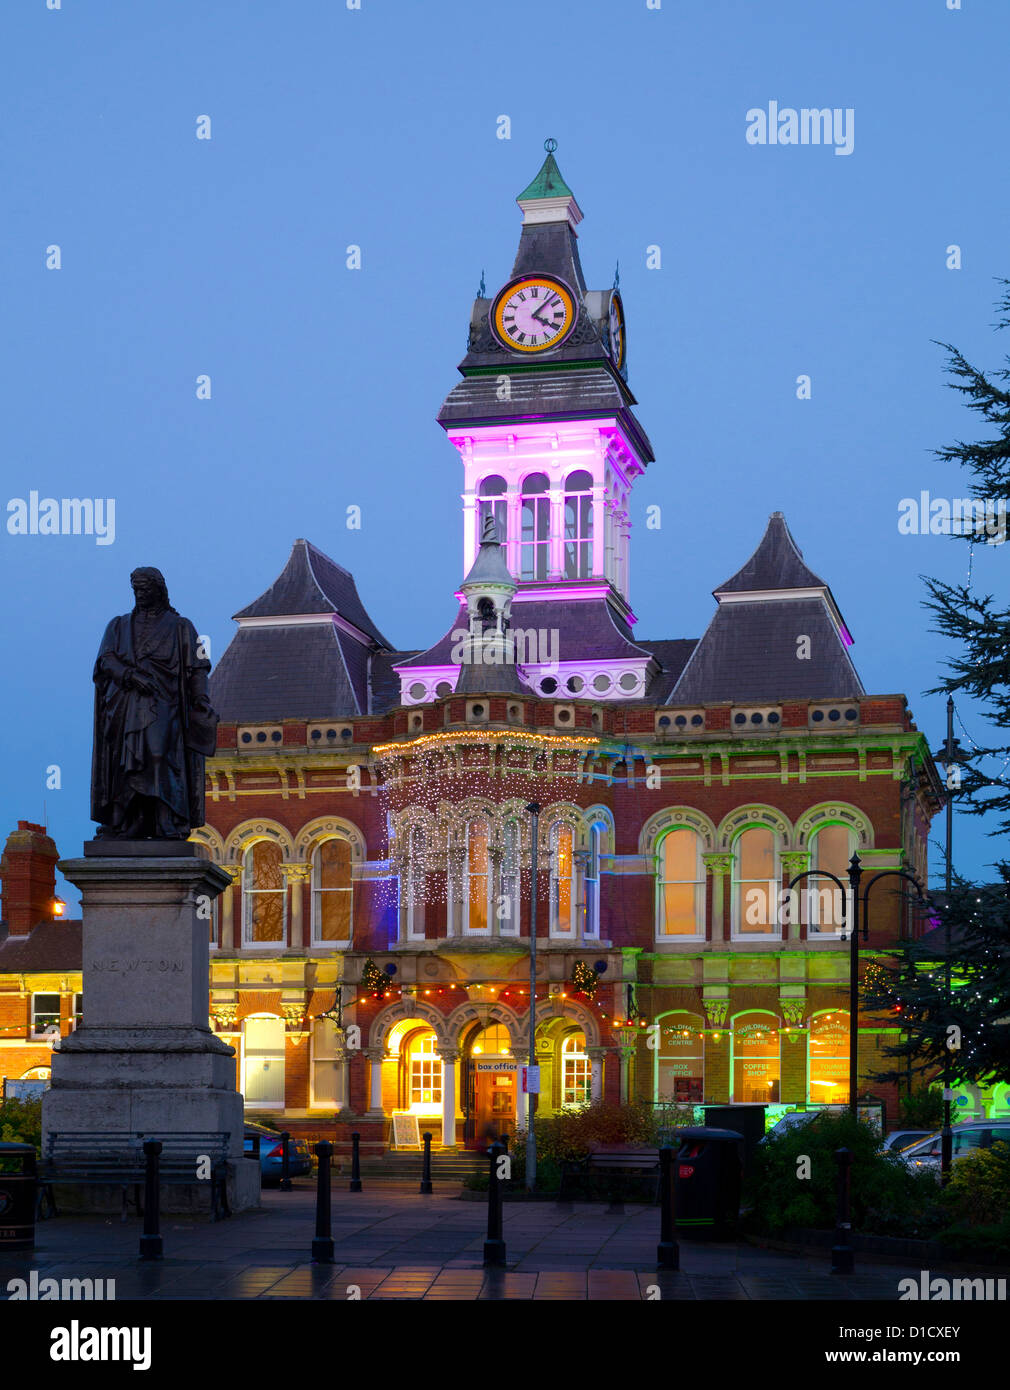 Grantham Town Hall and statue of Sir Isaac Newton at Xmas, Lincolnshire, England, UK - Stock Image